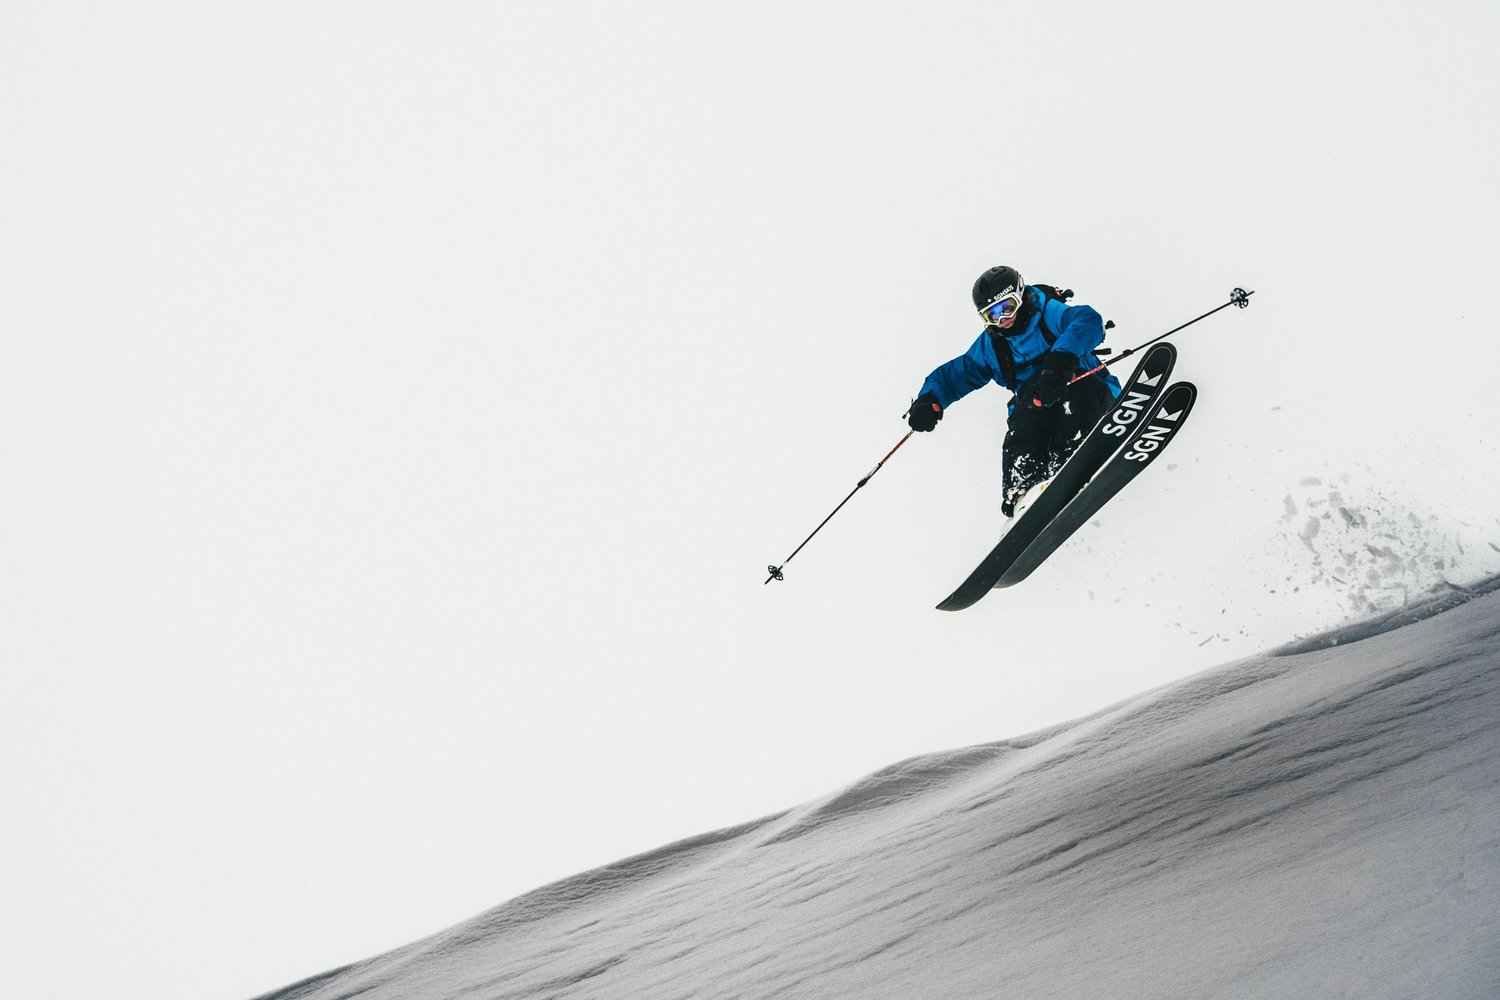 sgn skis -